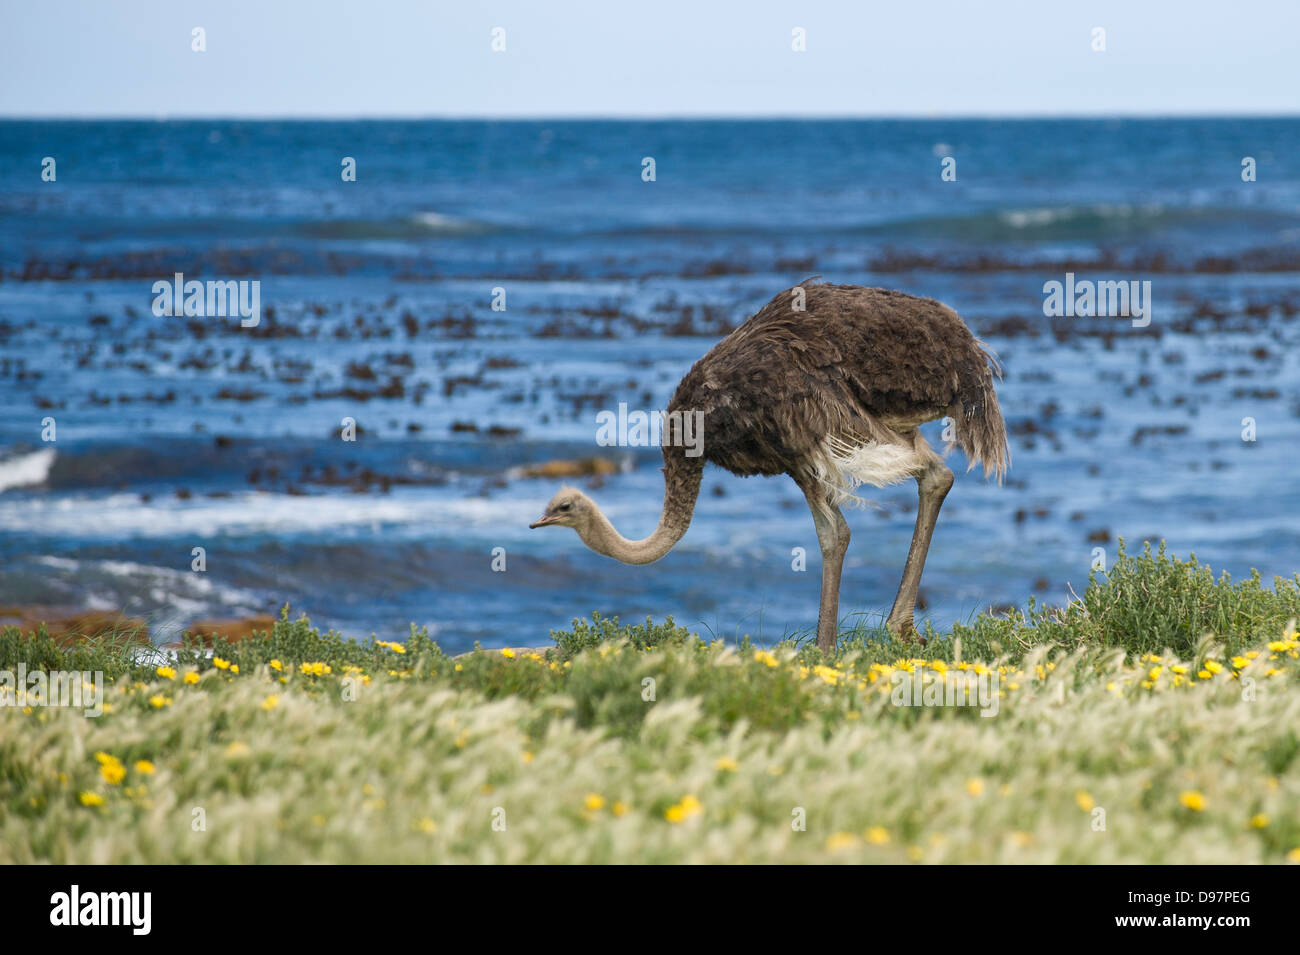 Female ostrich (Struthio camelus), Cape of Good Hope, Western Cape, South Africa - Stock Image